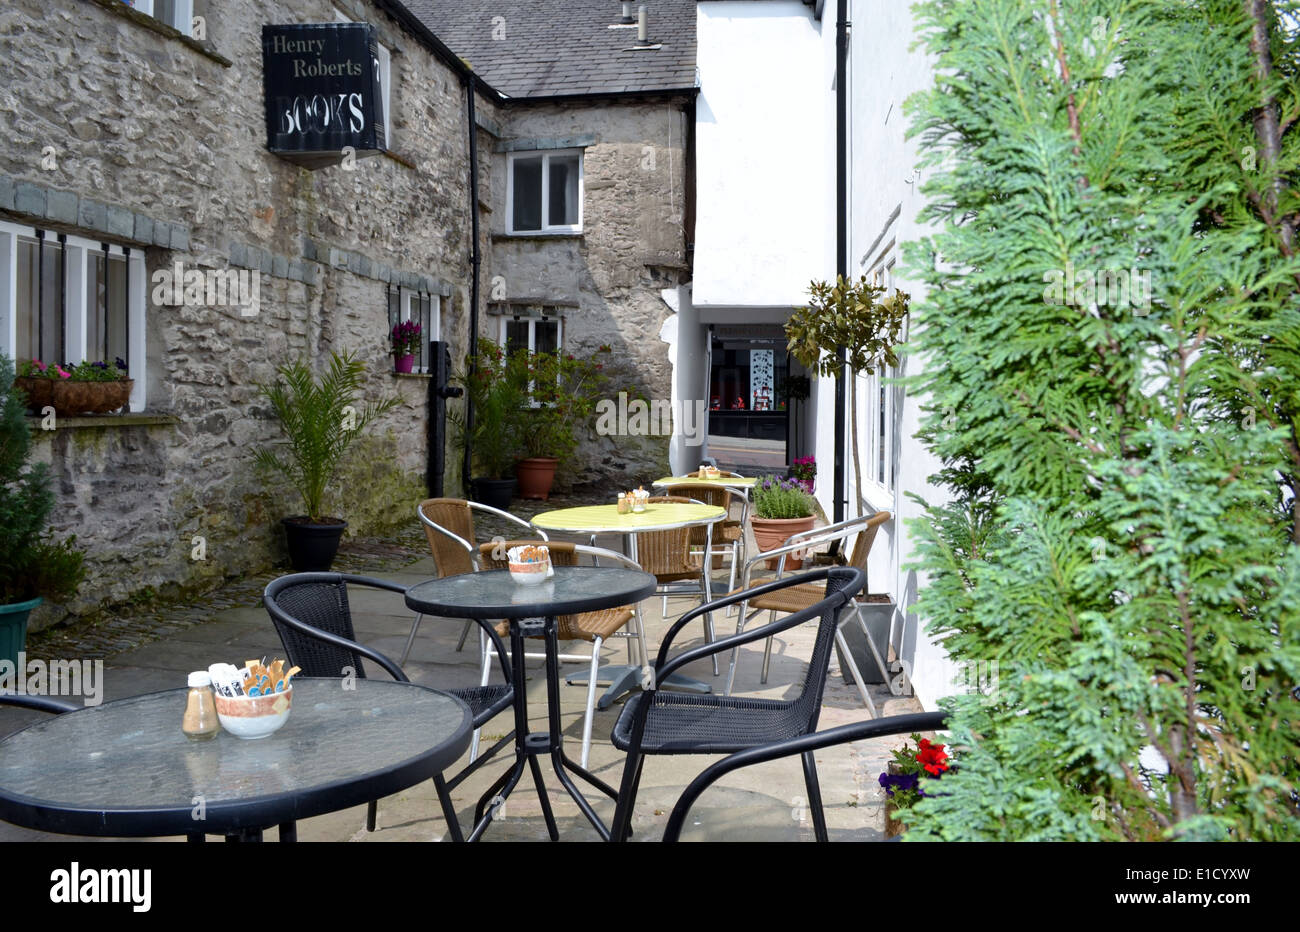 A stop off for a rest and brew in a lovely little courtyard in Kendal, Cumbria. - Stock Image